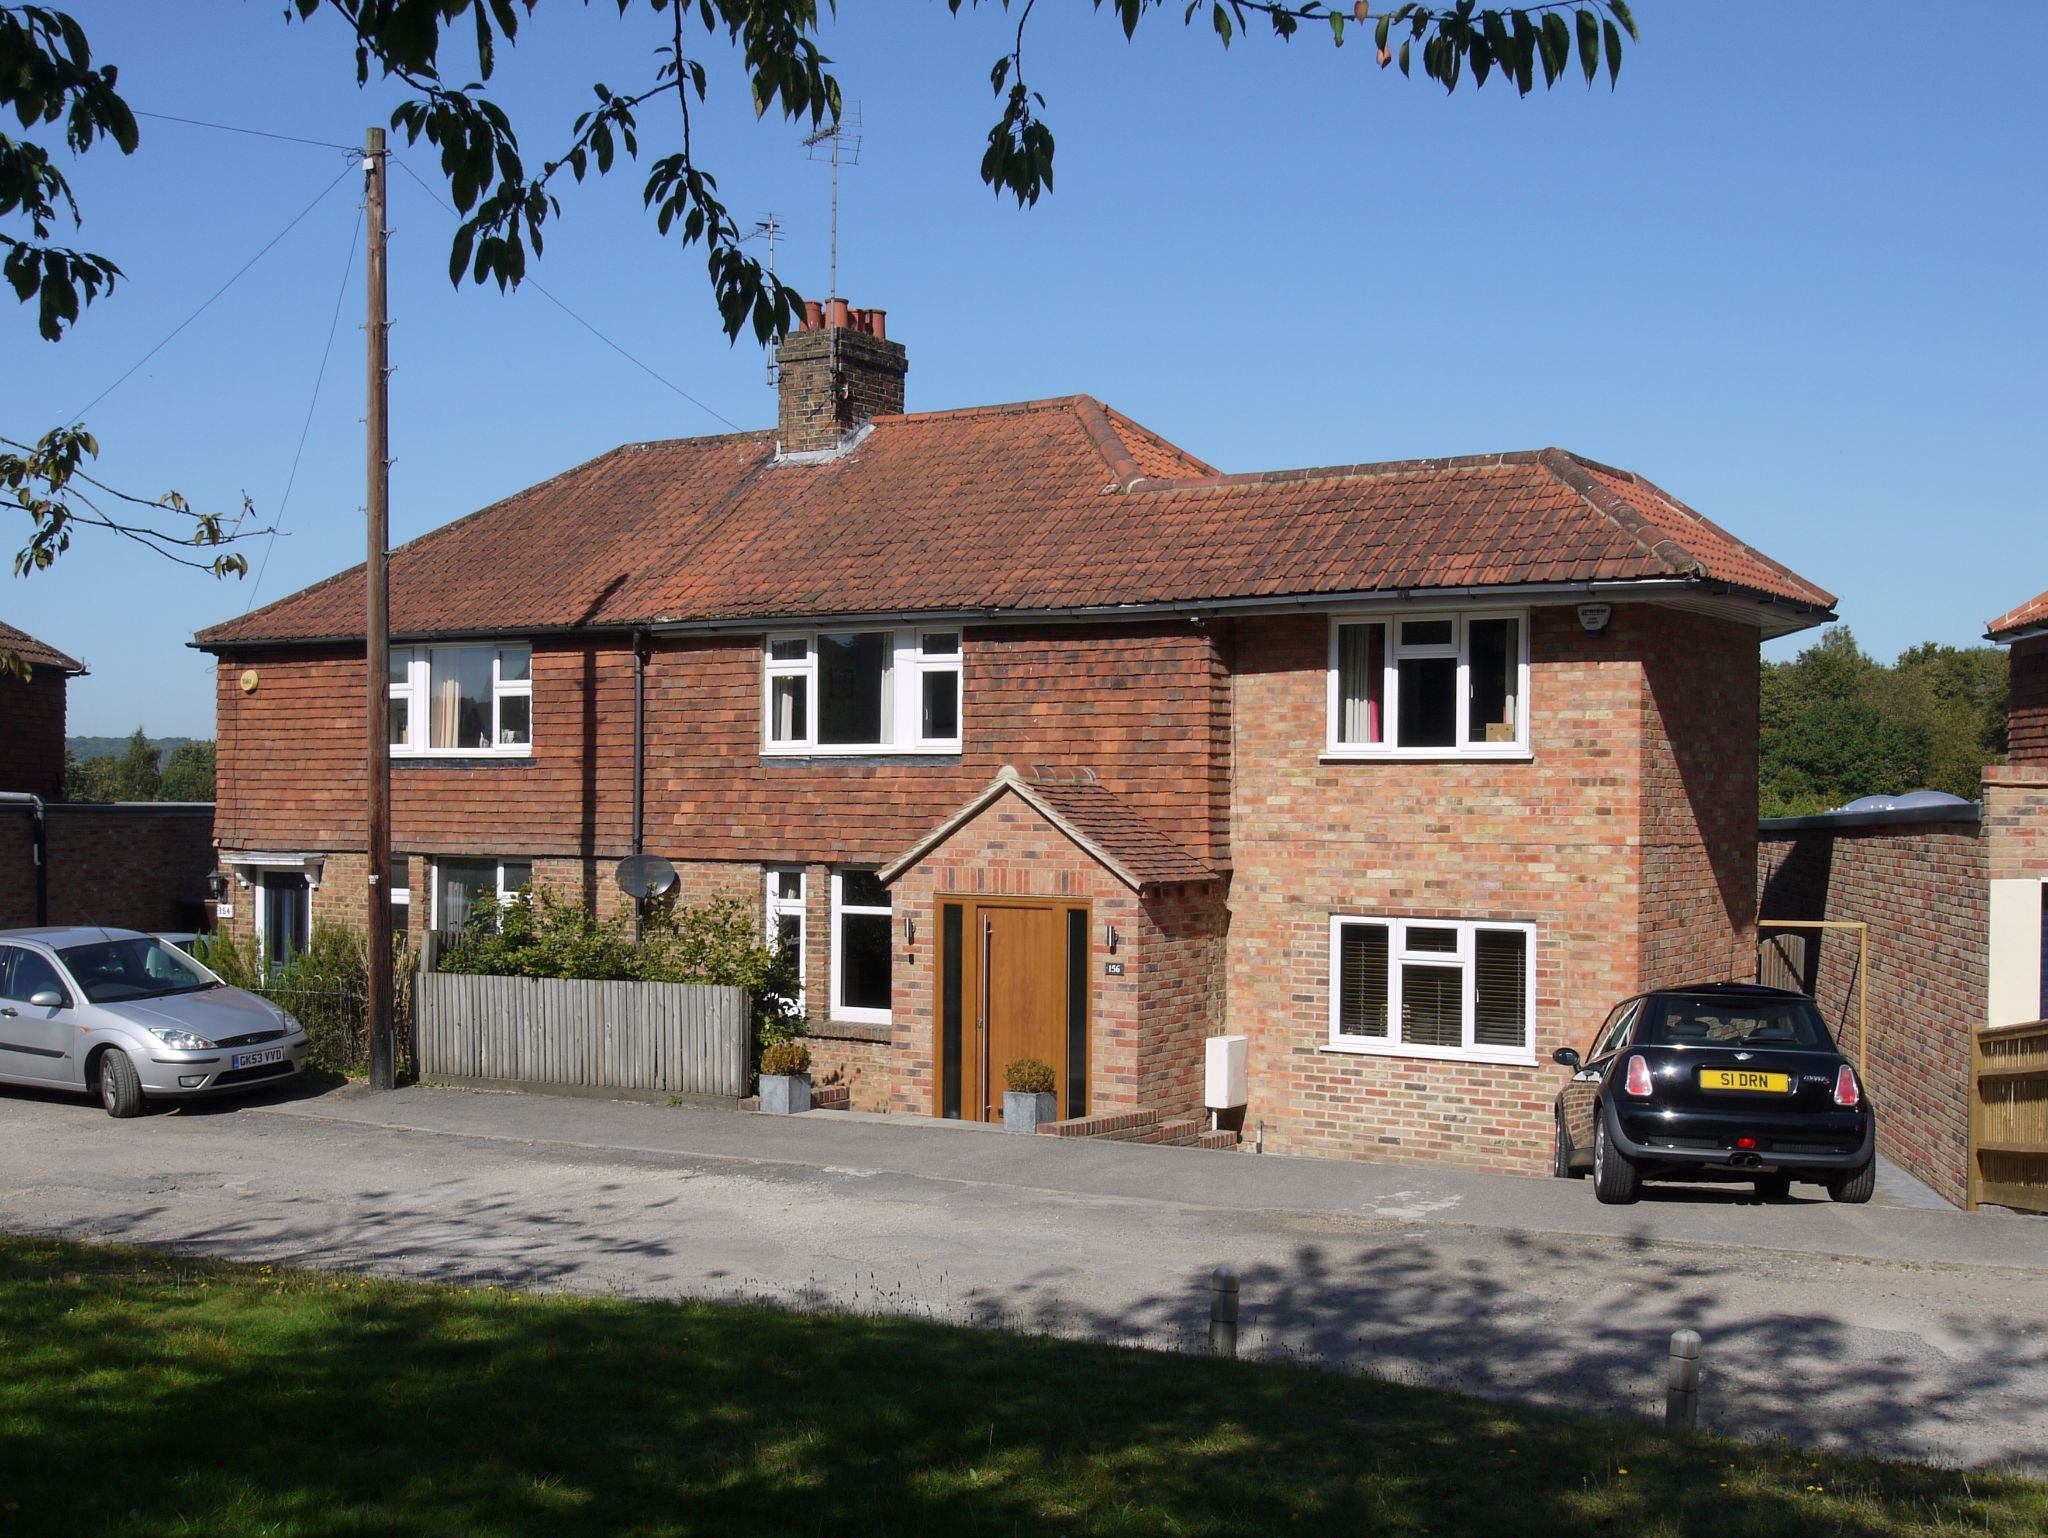 3 bedroom semi-detached house Sold in Sevenoaks - Photograph 11